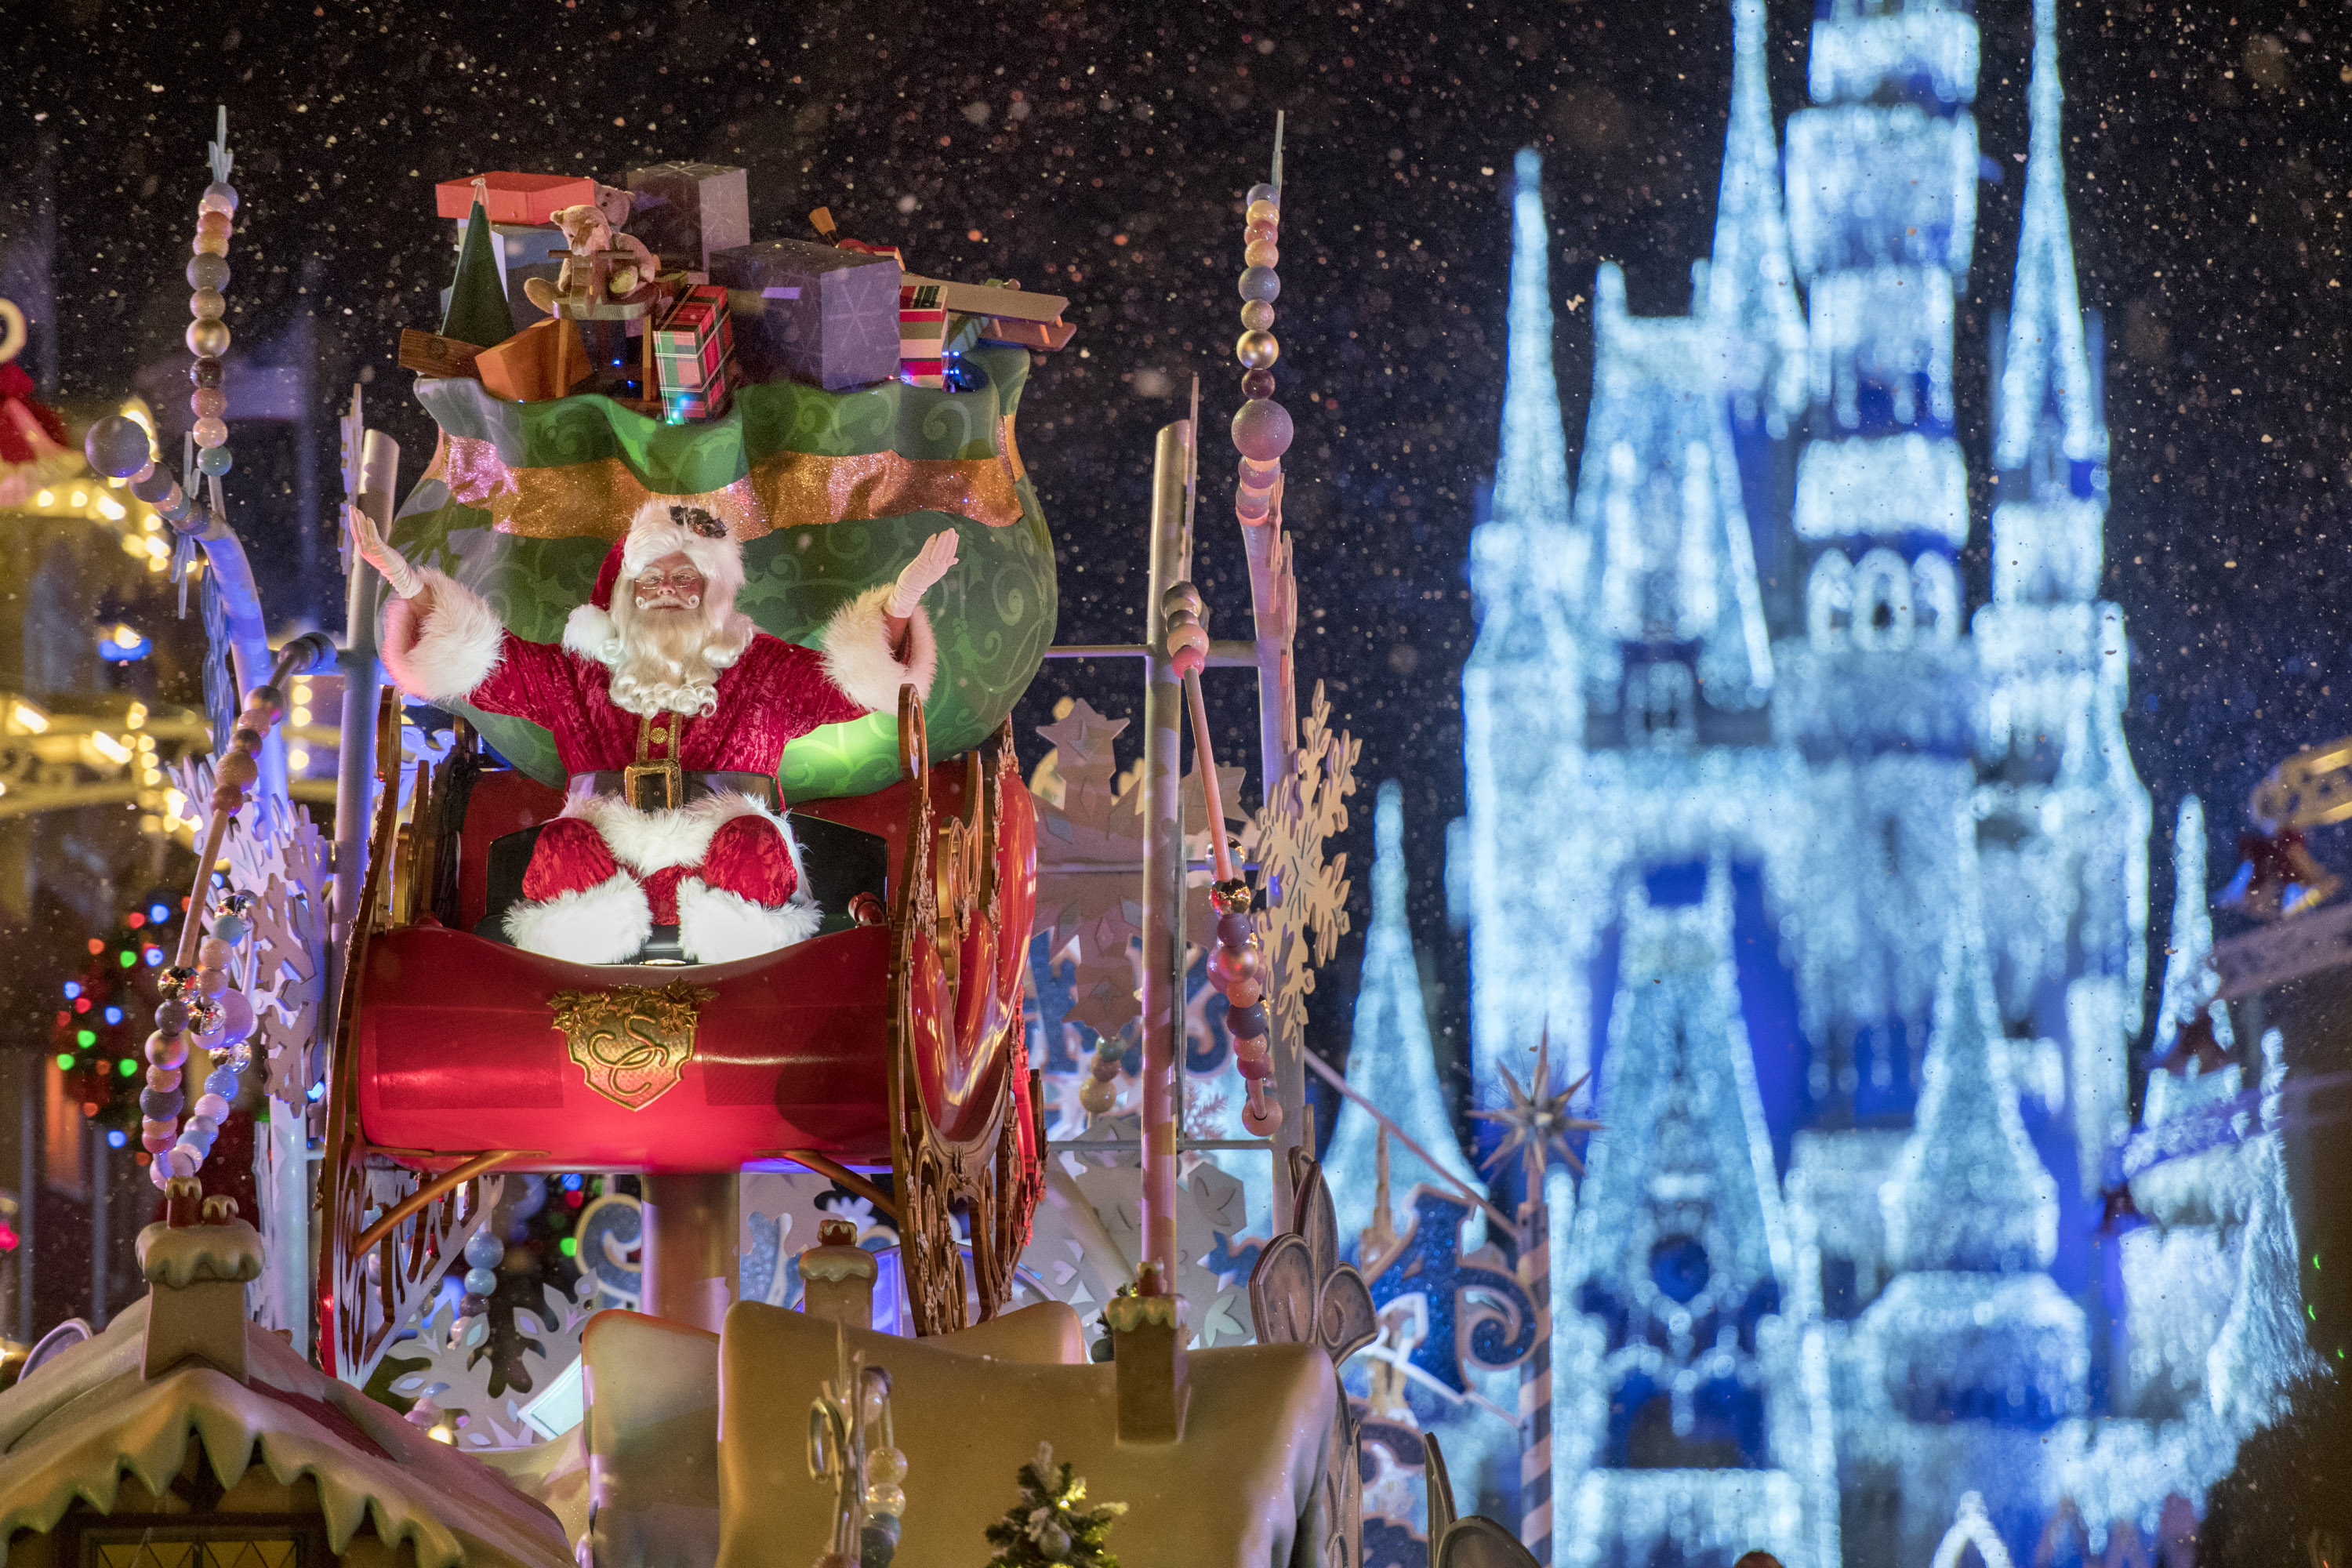 discover even more magic this holiday season at walt disney world resort walt disney world news